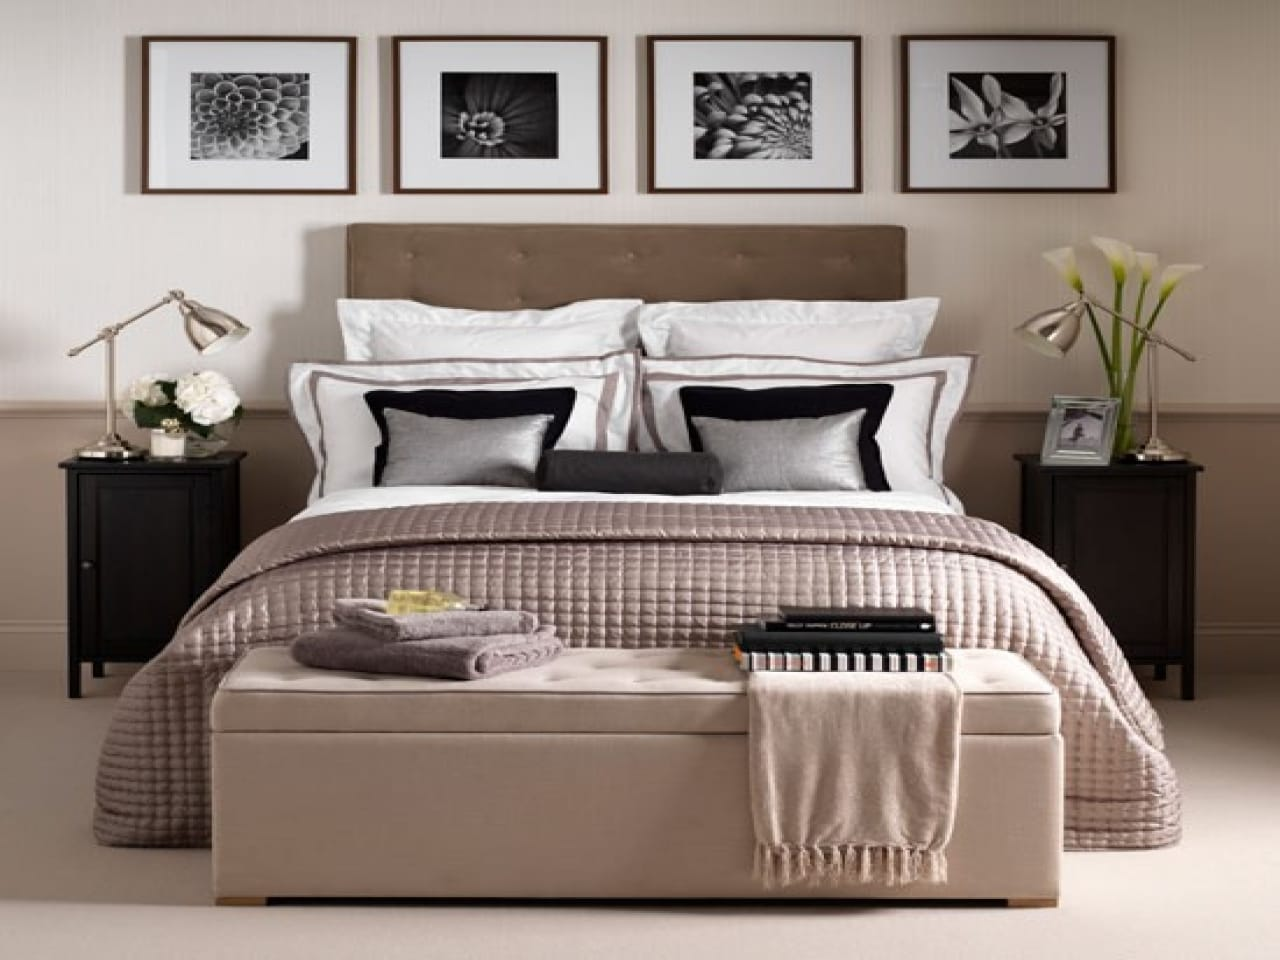 decorate a bedroom ideas para decorar una habitaci 243 n con estilo colch 243 n expr 233 s 11374